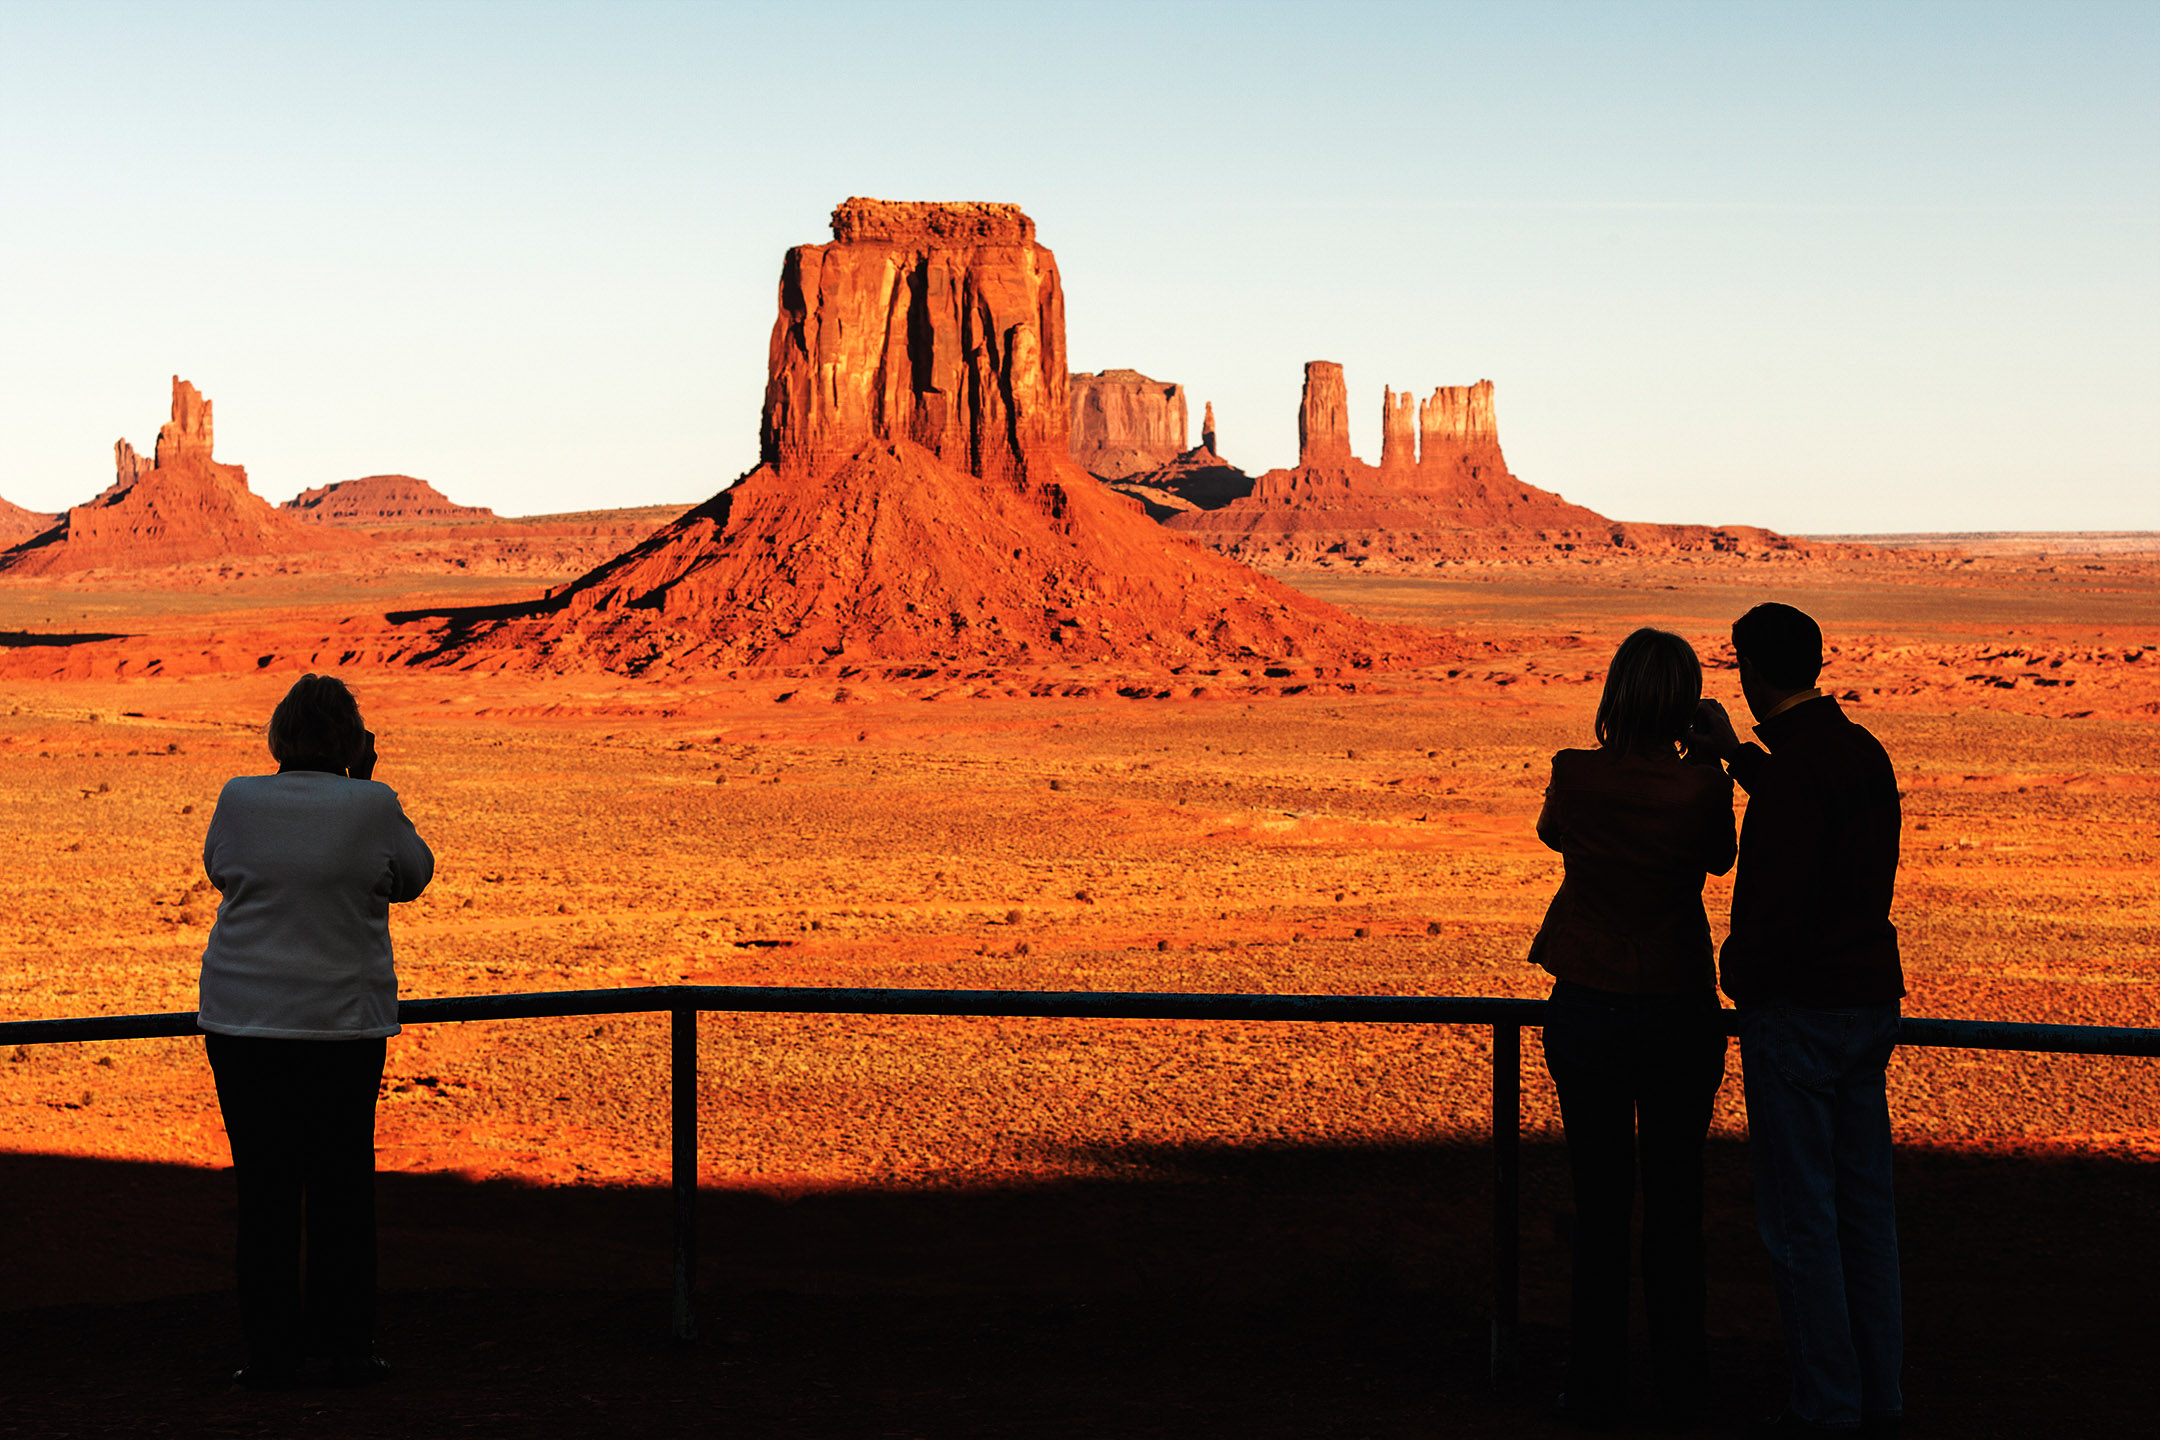 Silhouetted people enjoying a sunrise view of Monument Valley, Navajo County, Arizona.